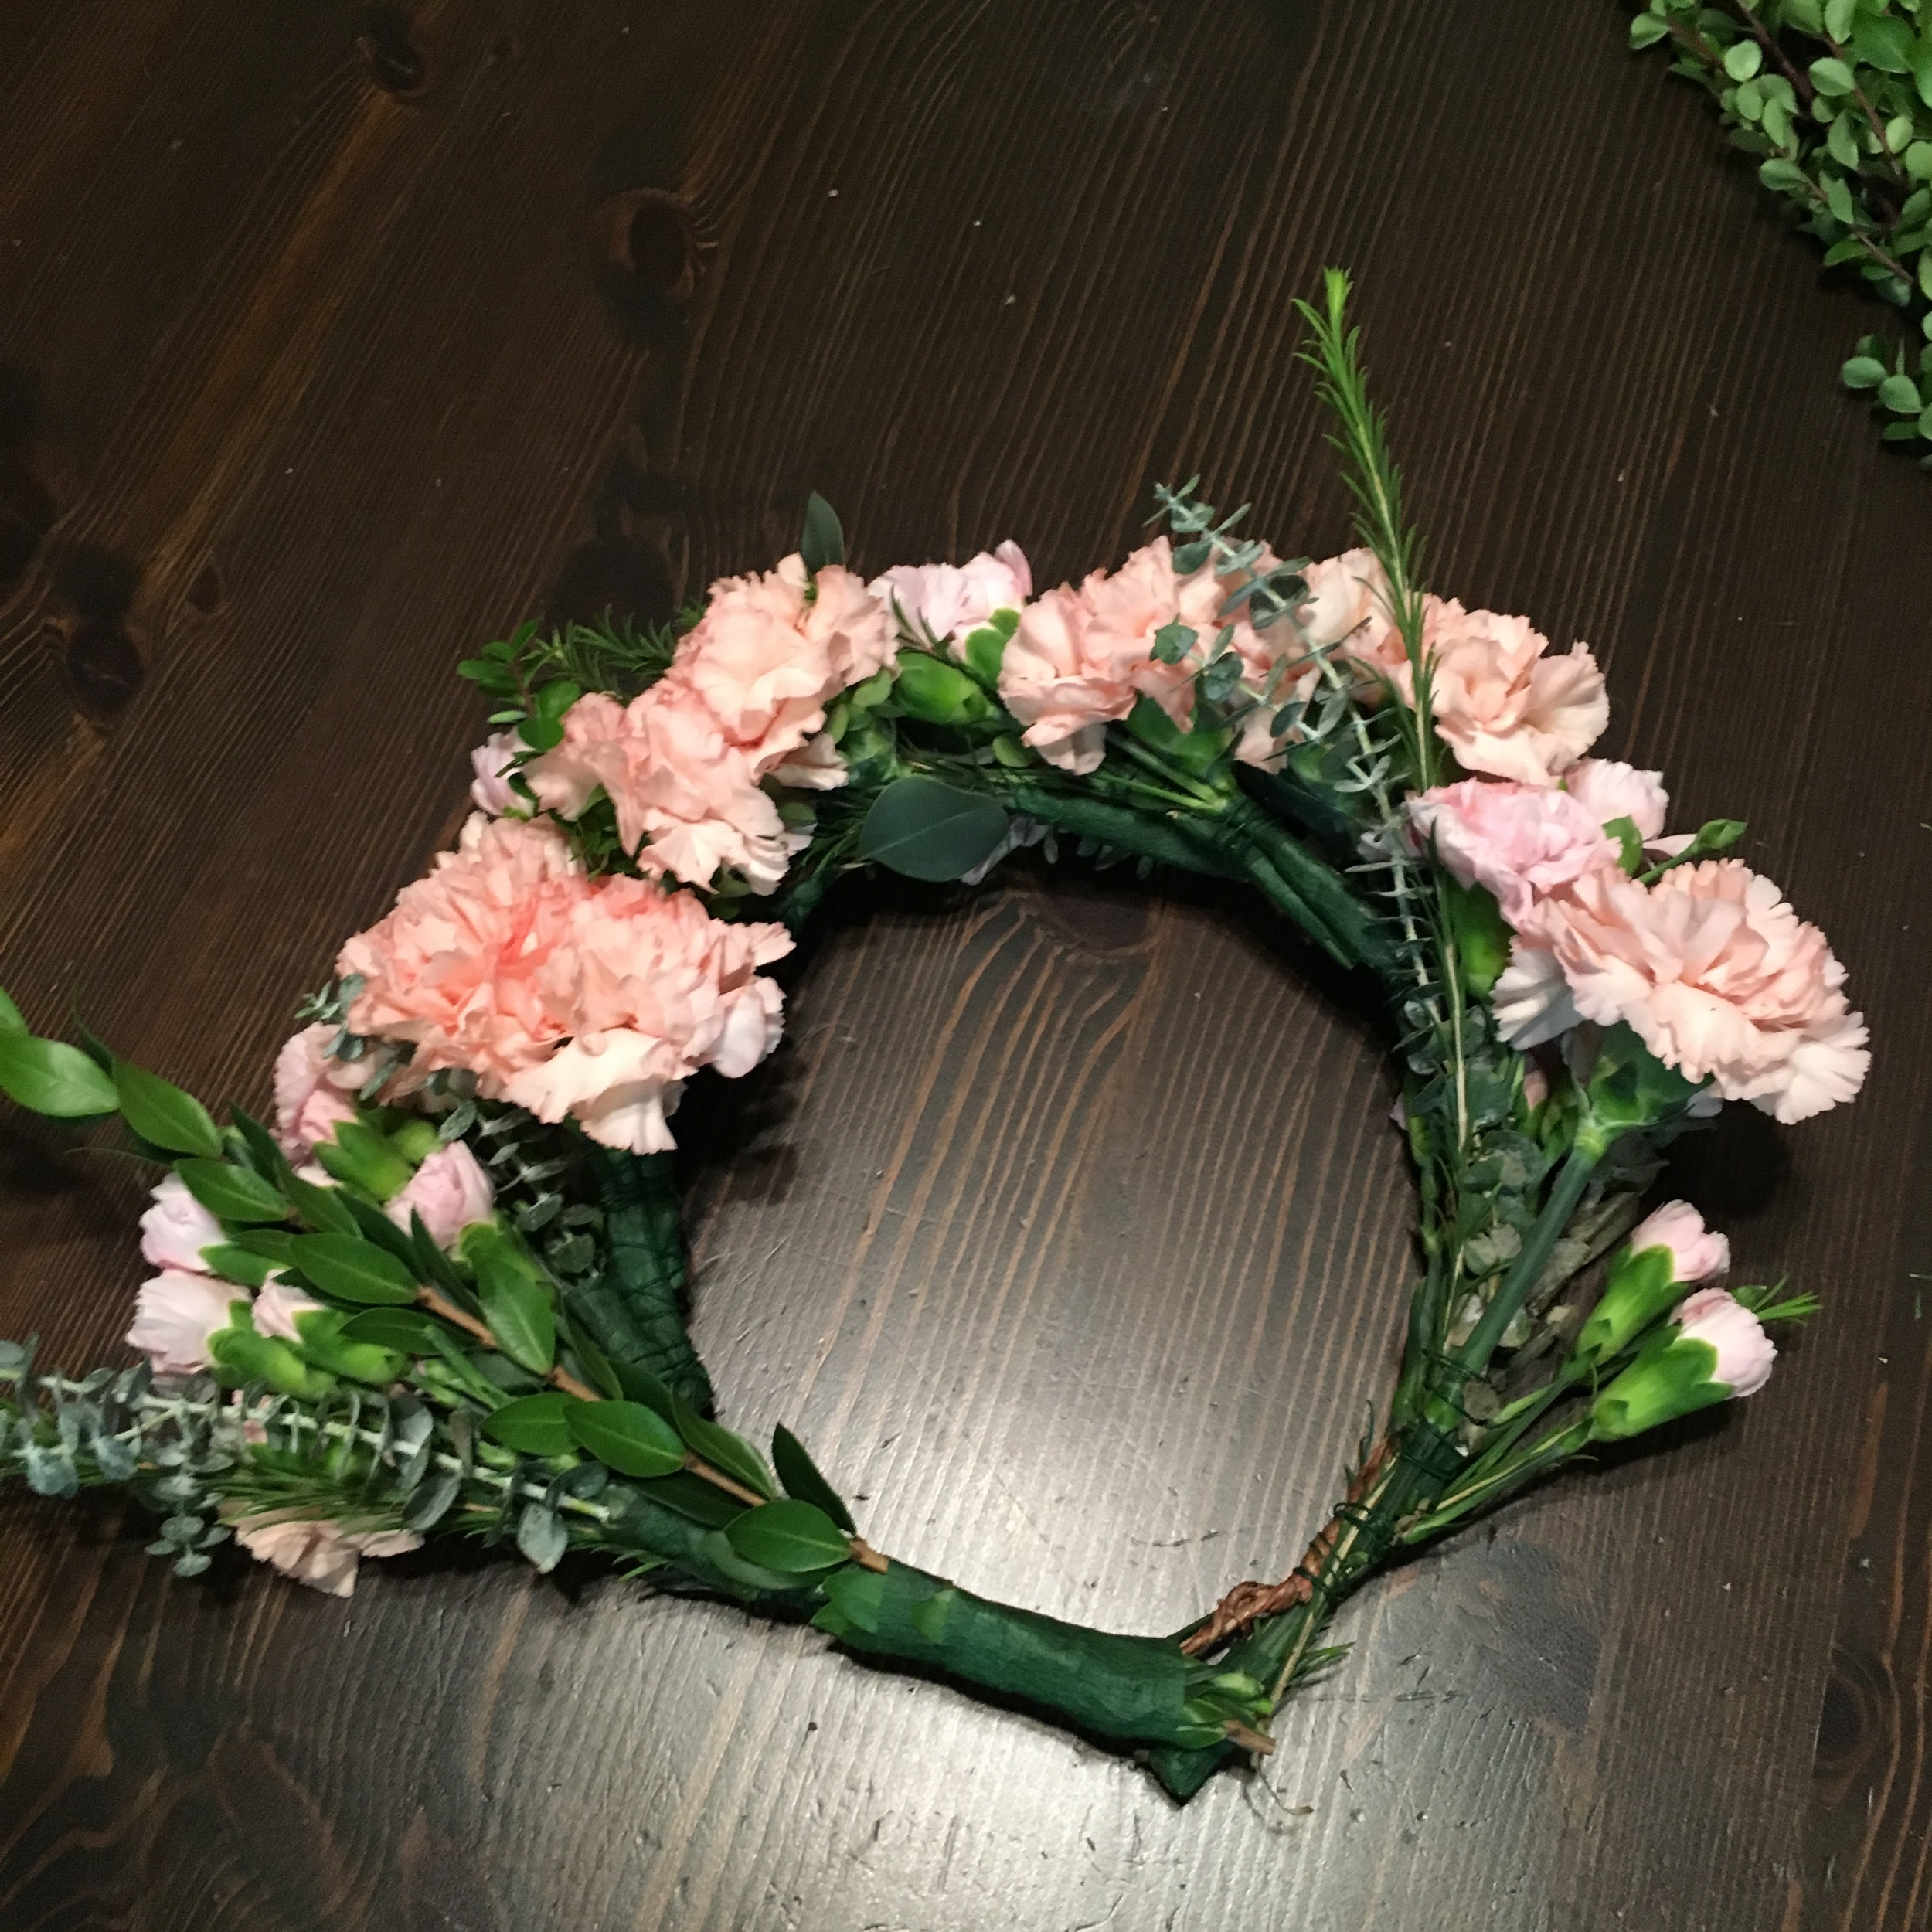 once you've attached all of your bunches, add in the longer ones. one on each side. and you're done!  your crown looks great!!